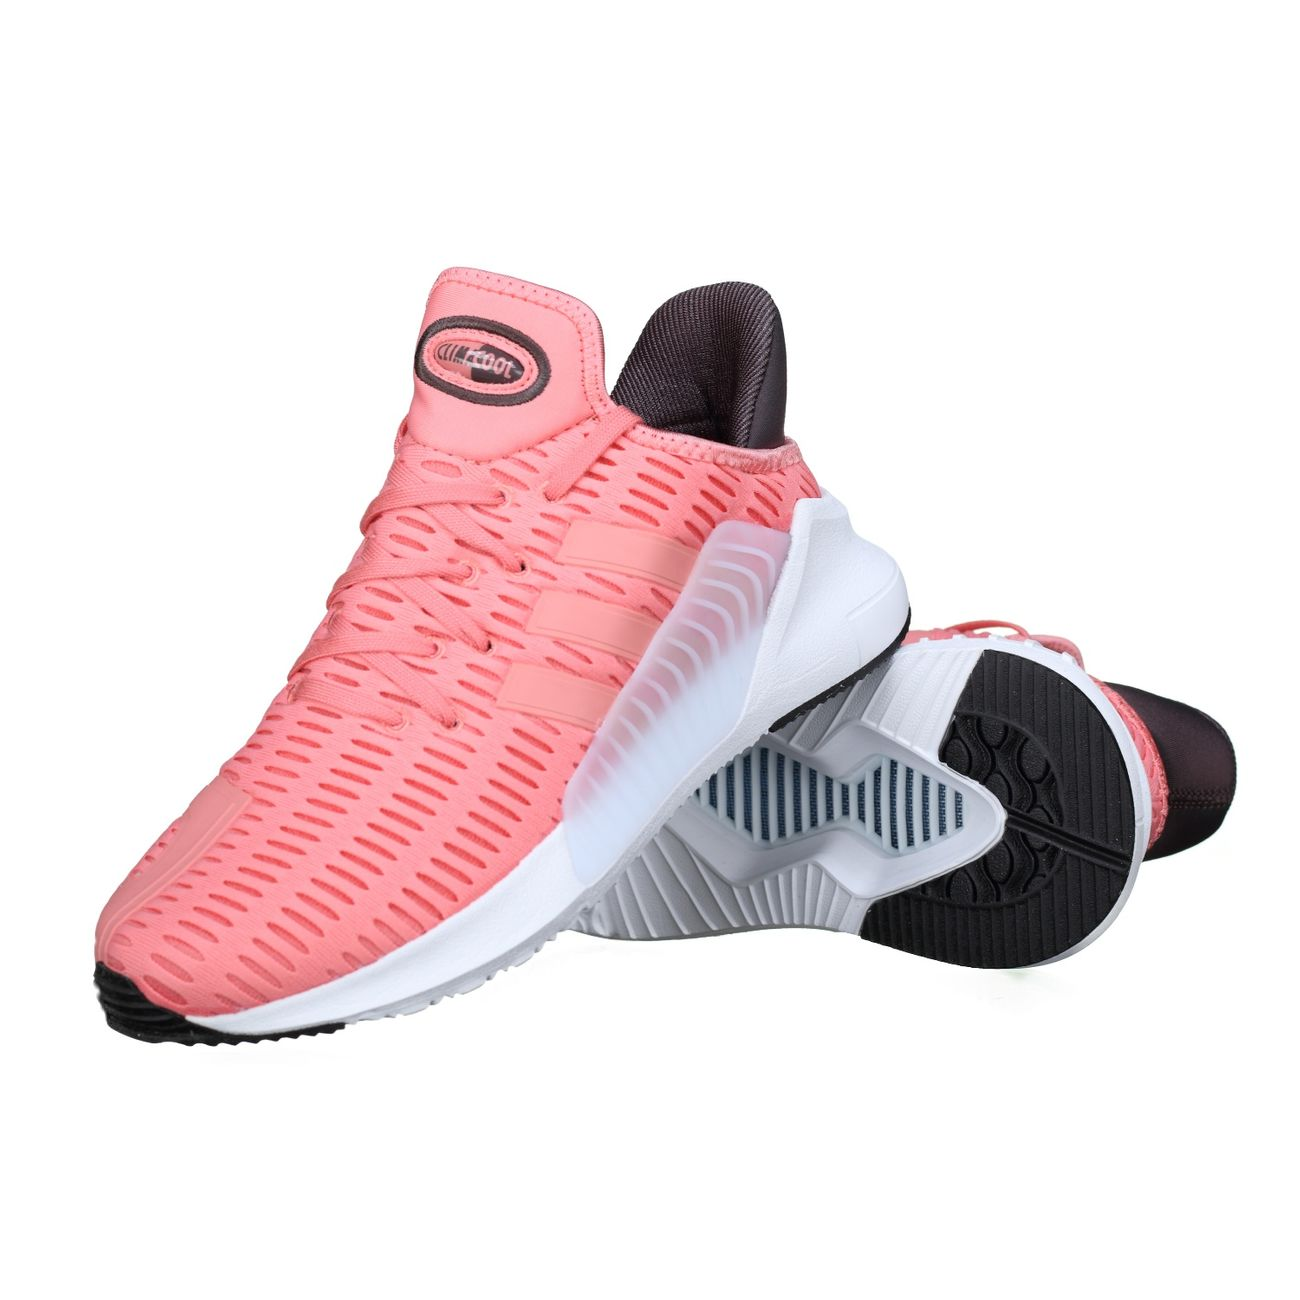 Climacool W Adidas Rose Et – By9294 Prix Basket 0217 Pas Achat Cher gf76yYvb